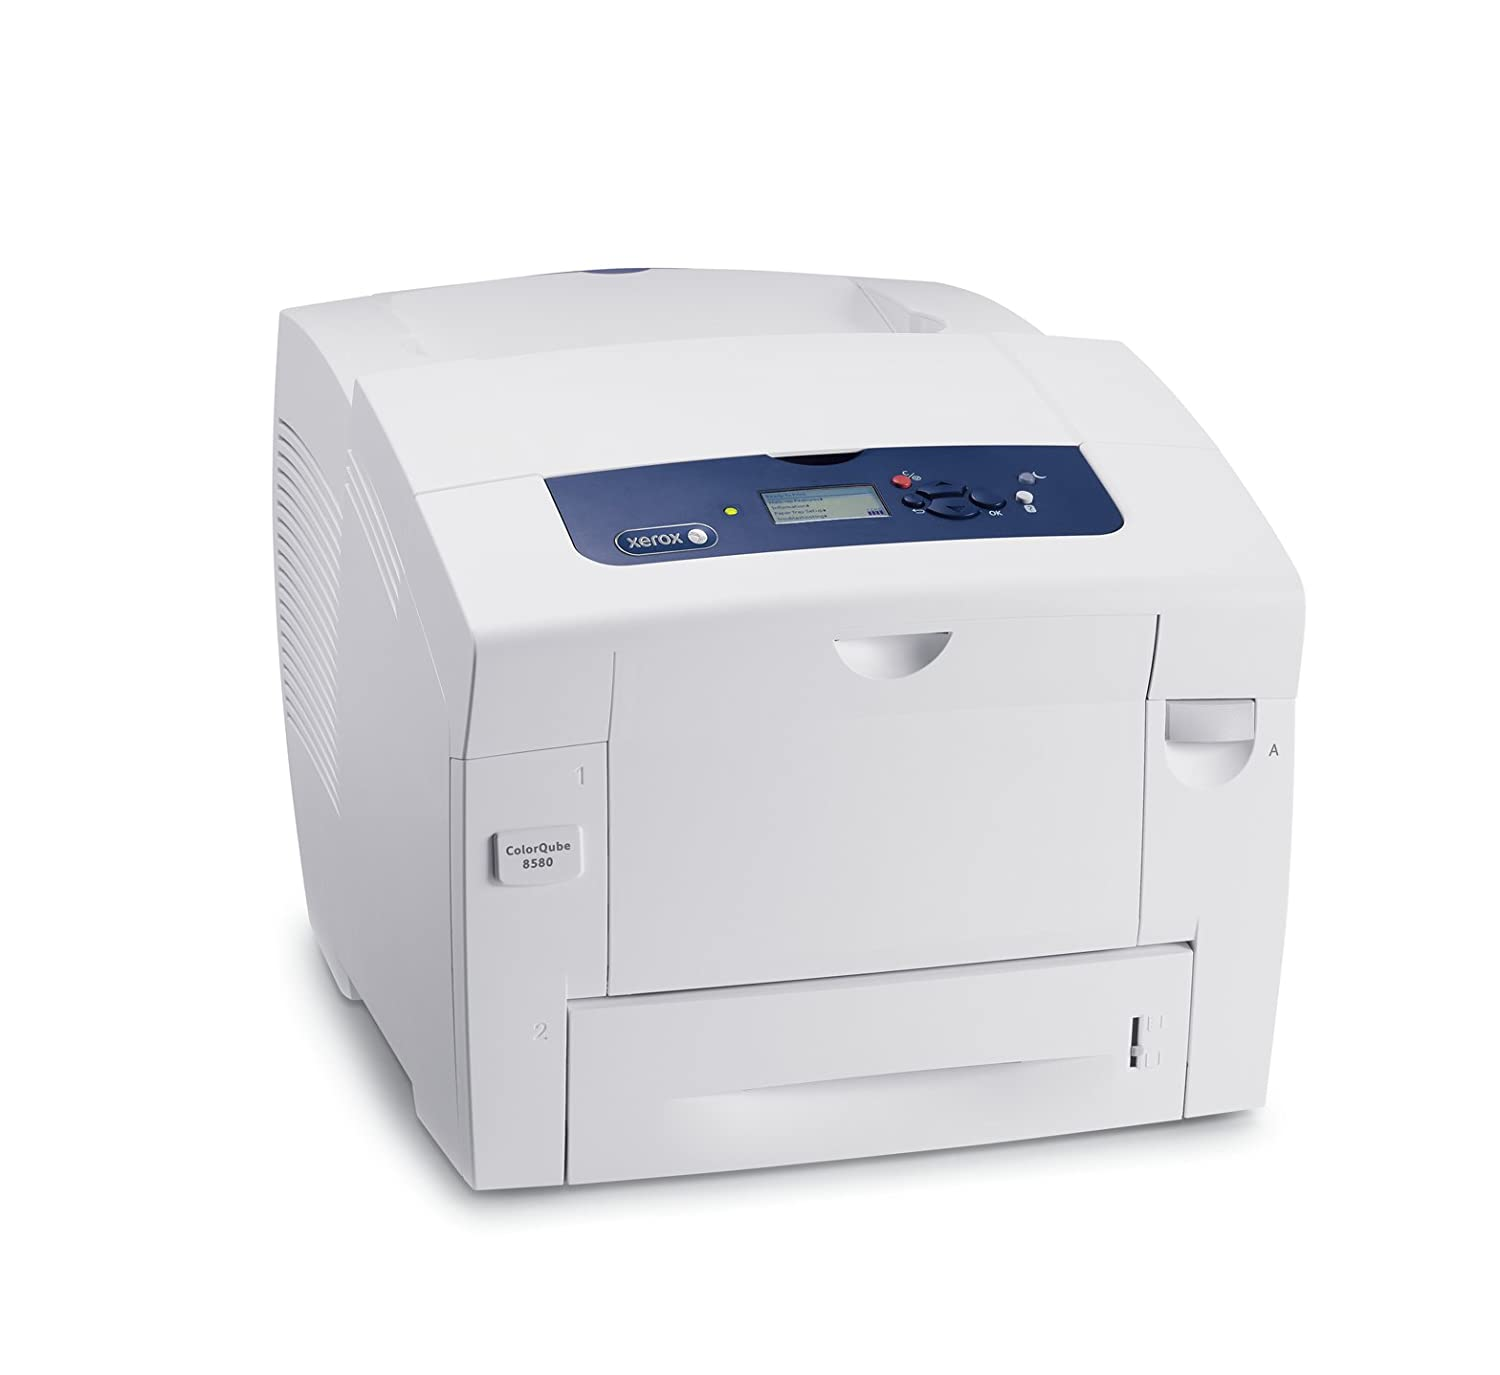 Amazon.com: Xerox ColorQube 8580/DN Color Printer - Auto Duplexing:  Electronics